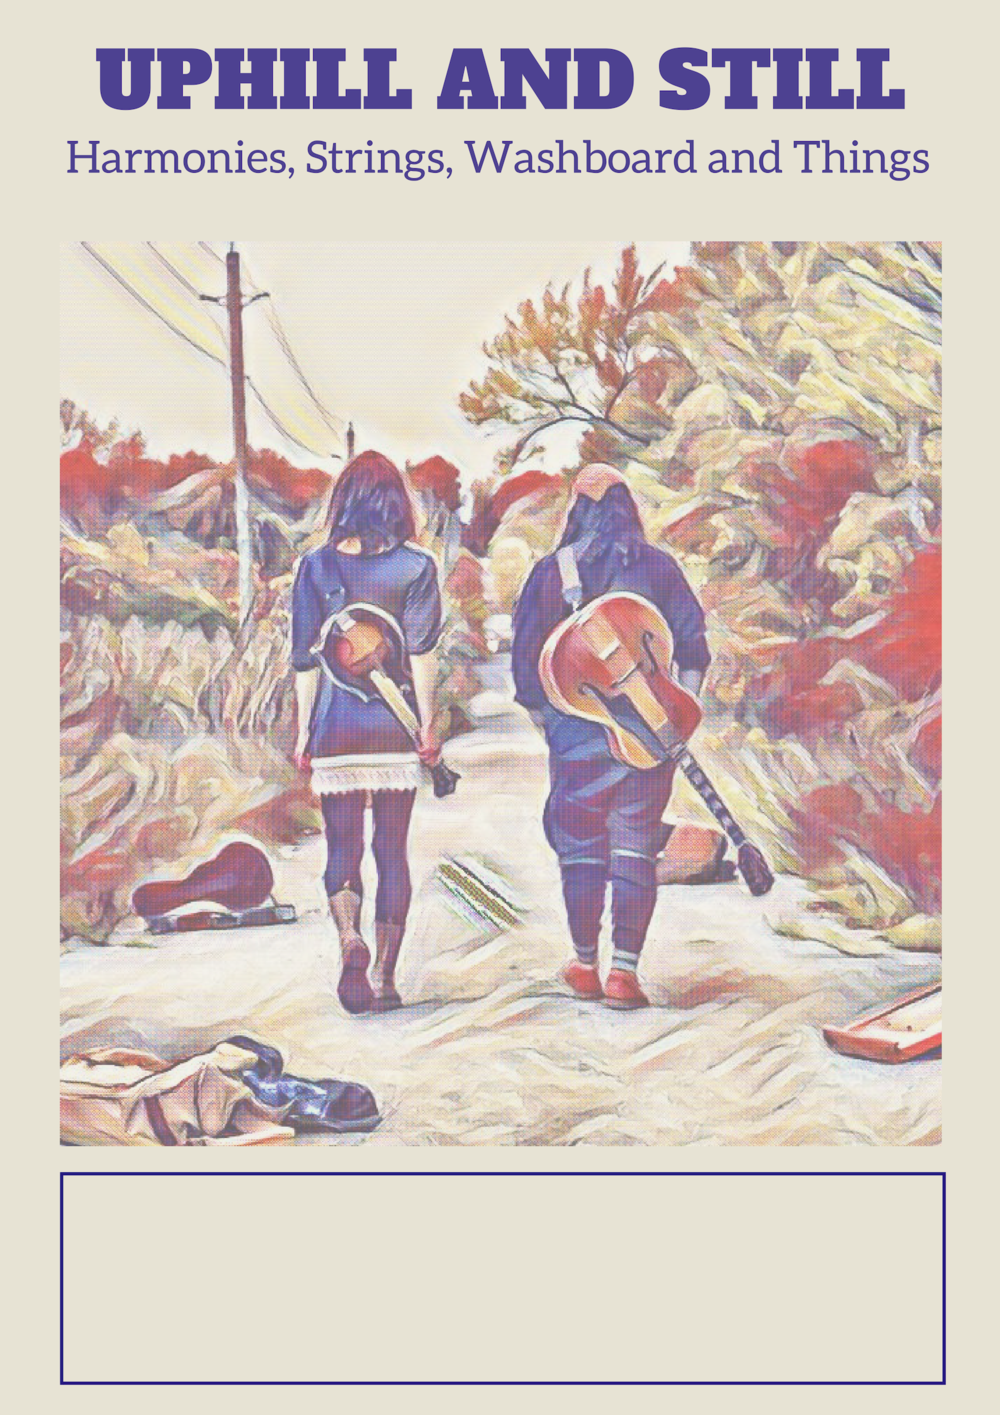 Uphill and Still Folk poster blank (3).png